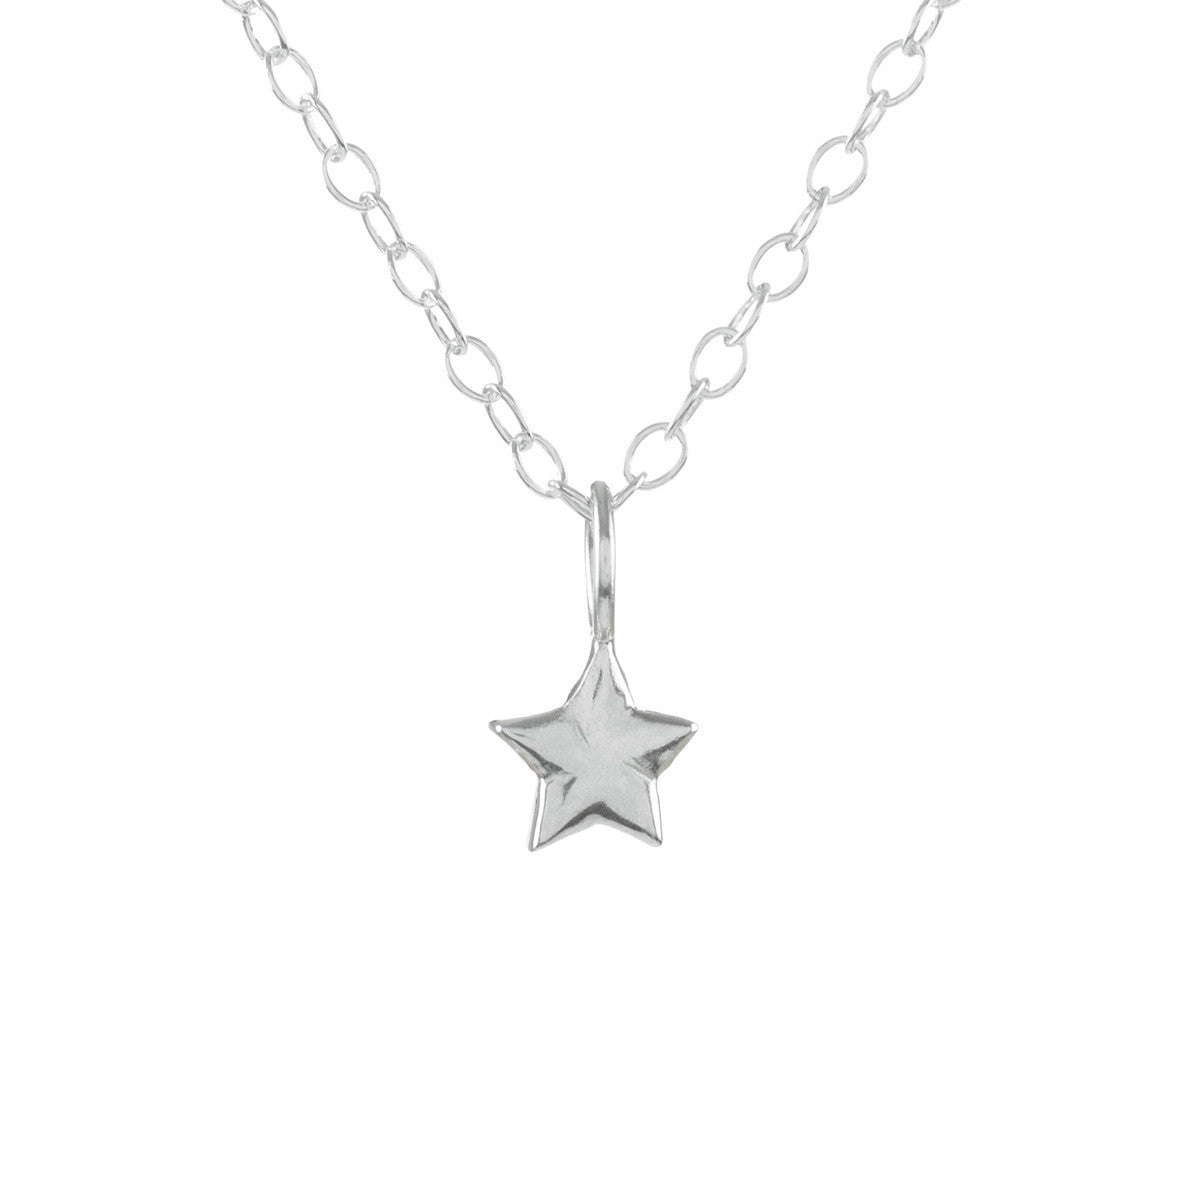 elegant from necklaces delicate temperament jewelry item necklace gold silver star pendant in cute tiny women